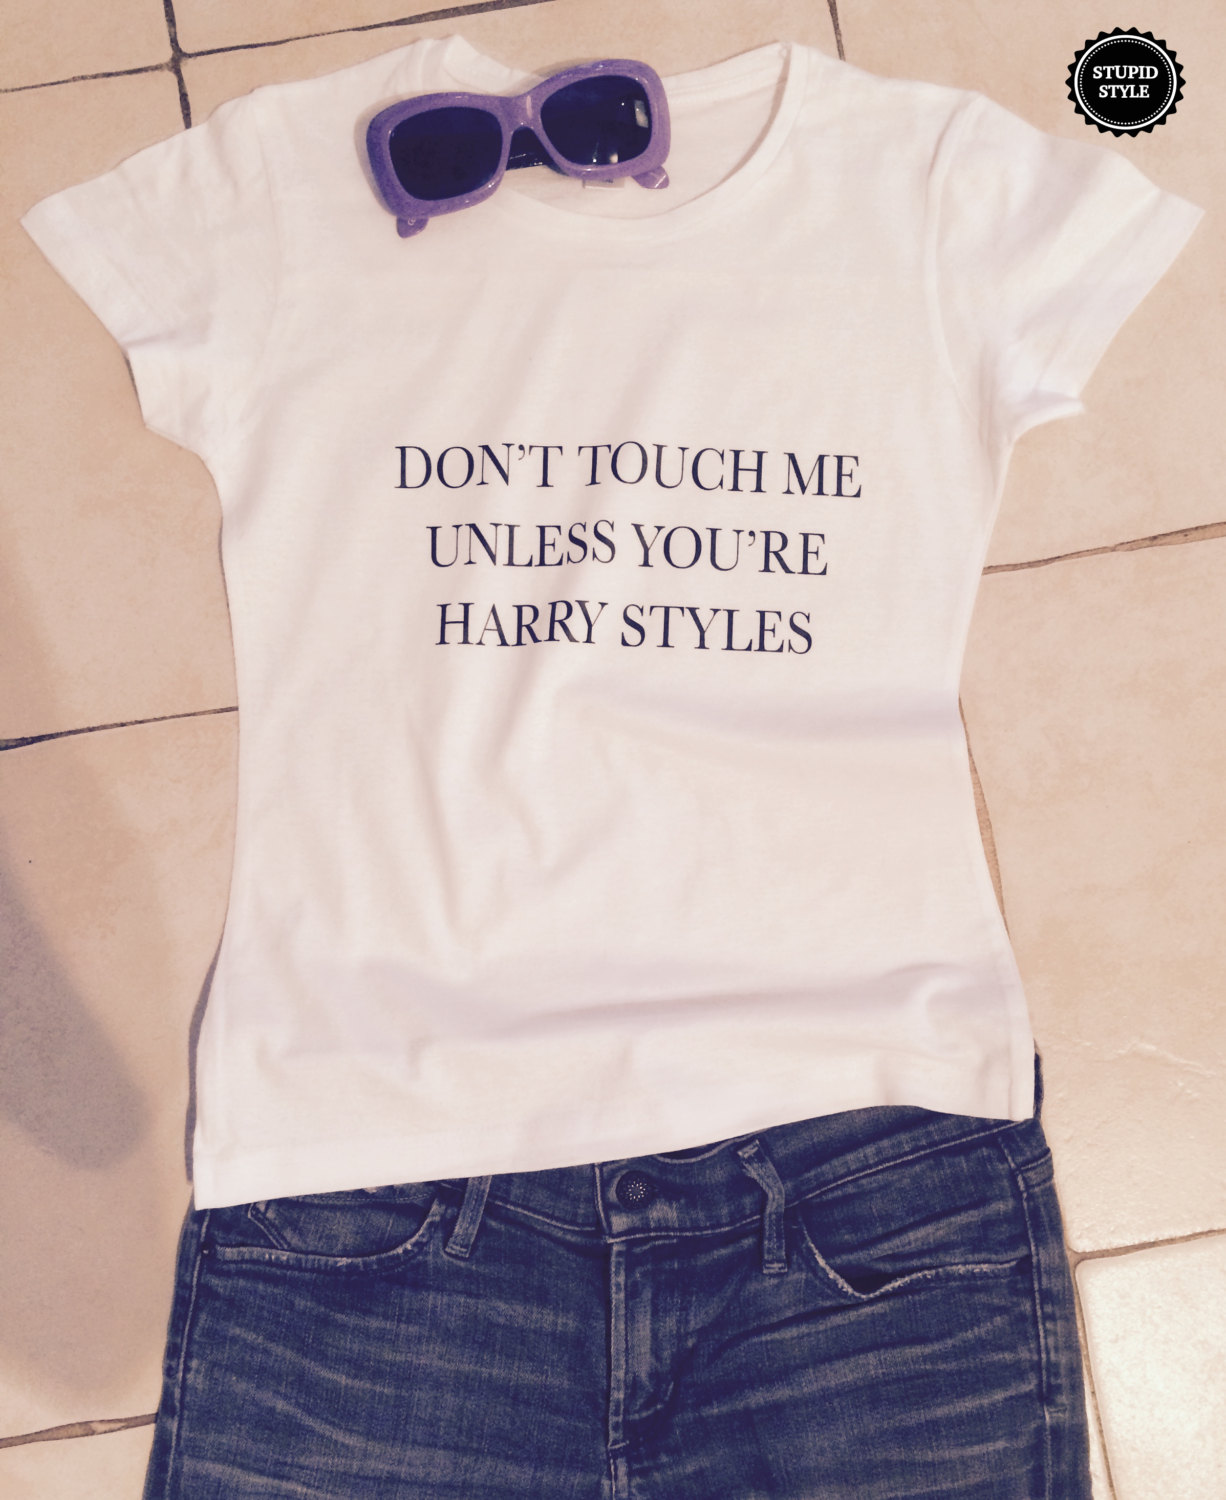 Dont touch me unless you're harry styles t-shirts for women tshirts shirts gifts t-shirt womens tops girls tumblr funny girlfriend teenagers